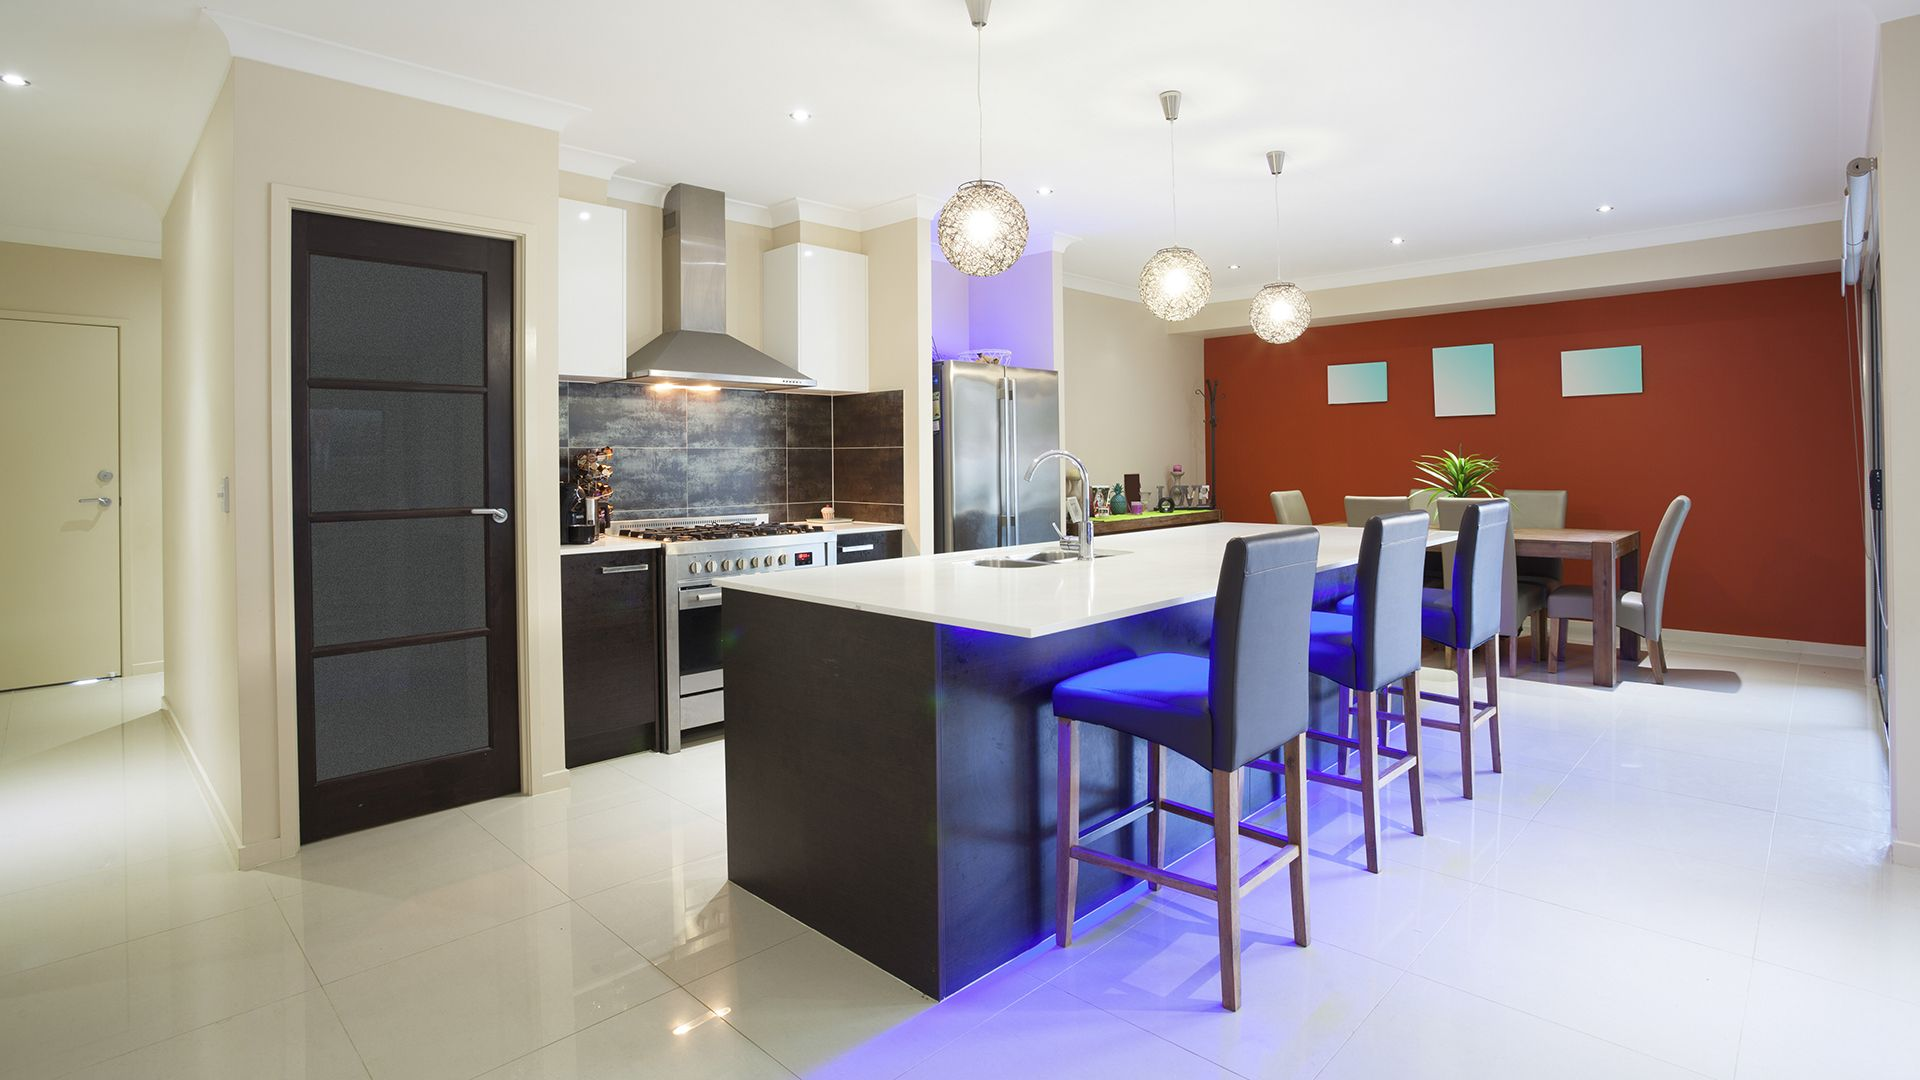 Within The Kitchen, There Are A Variety Of Areas That